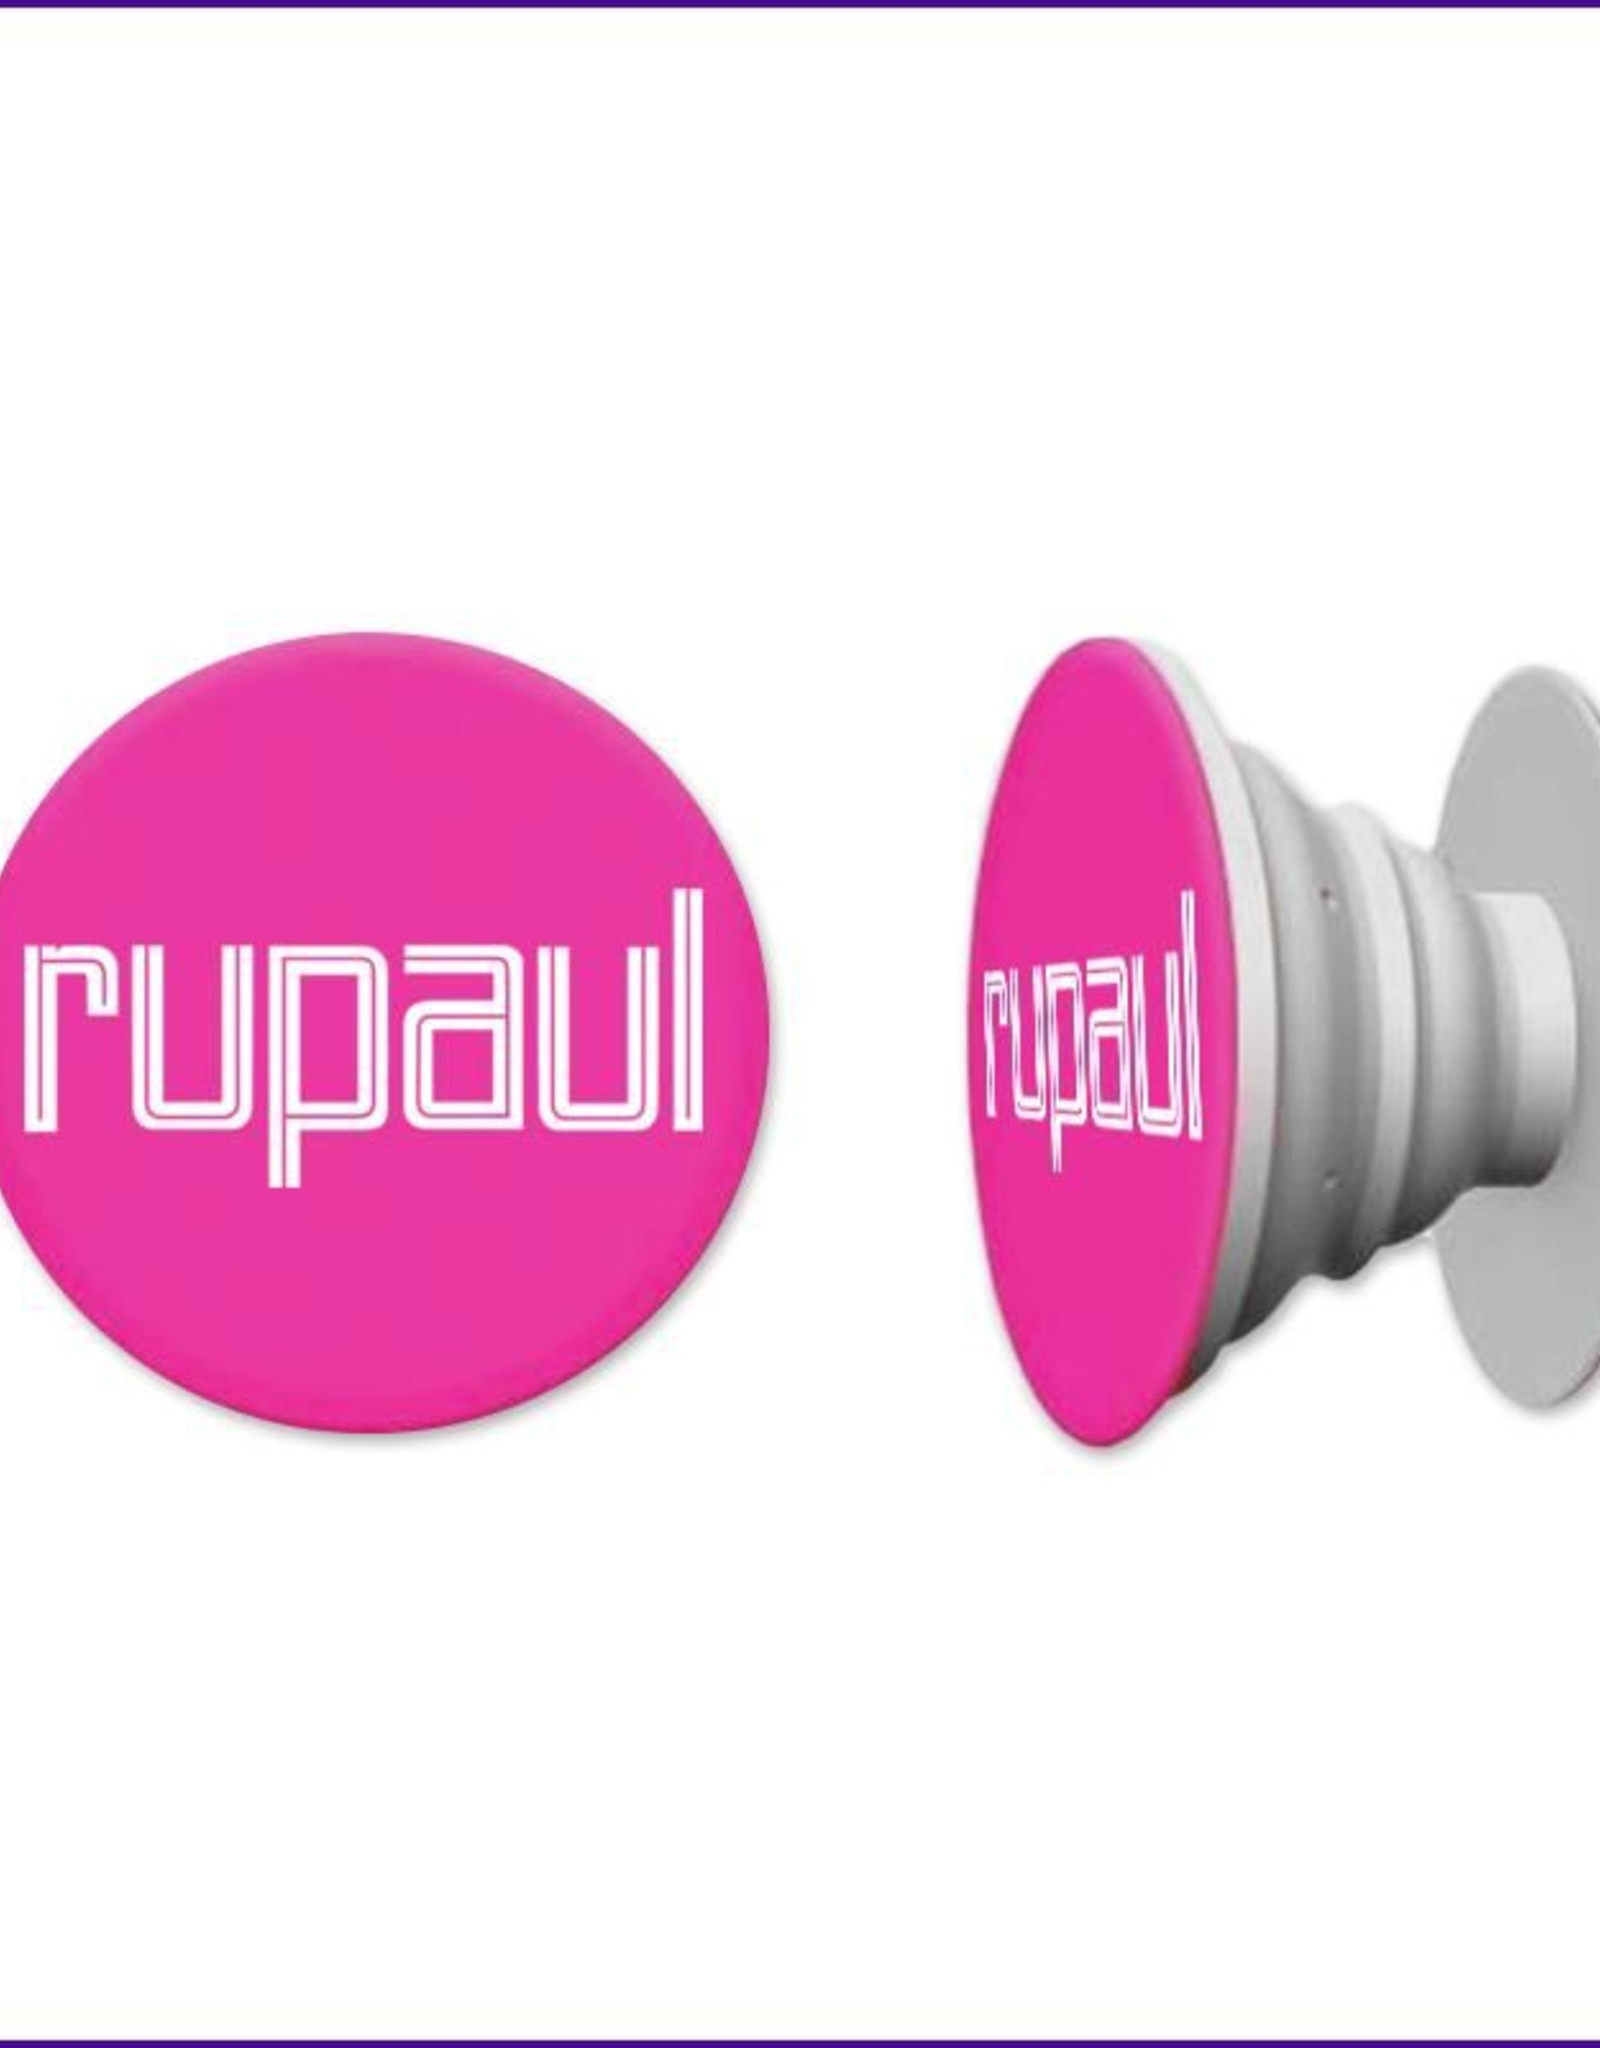 Rupaul Logo Pop Socket